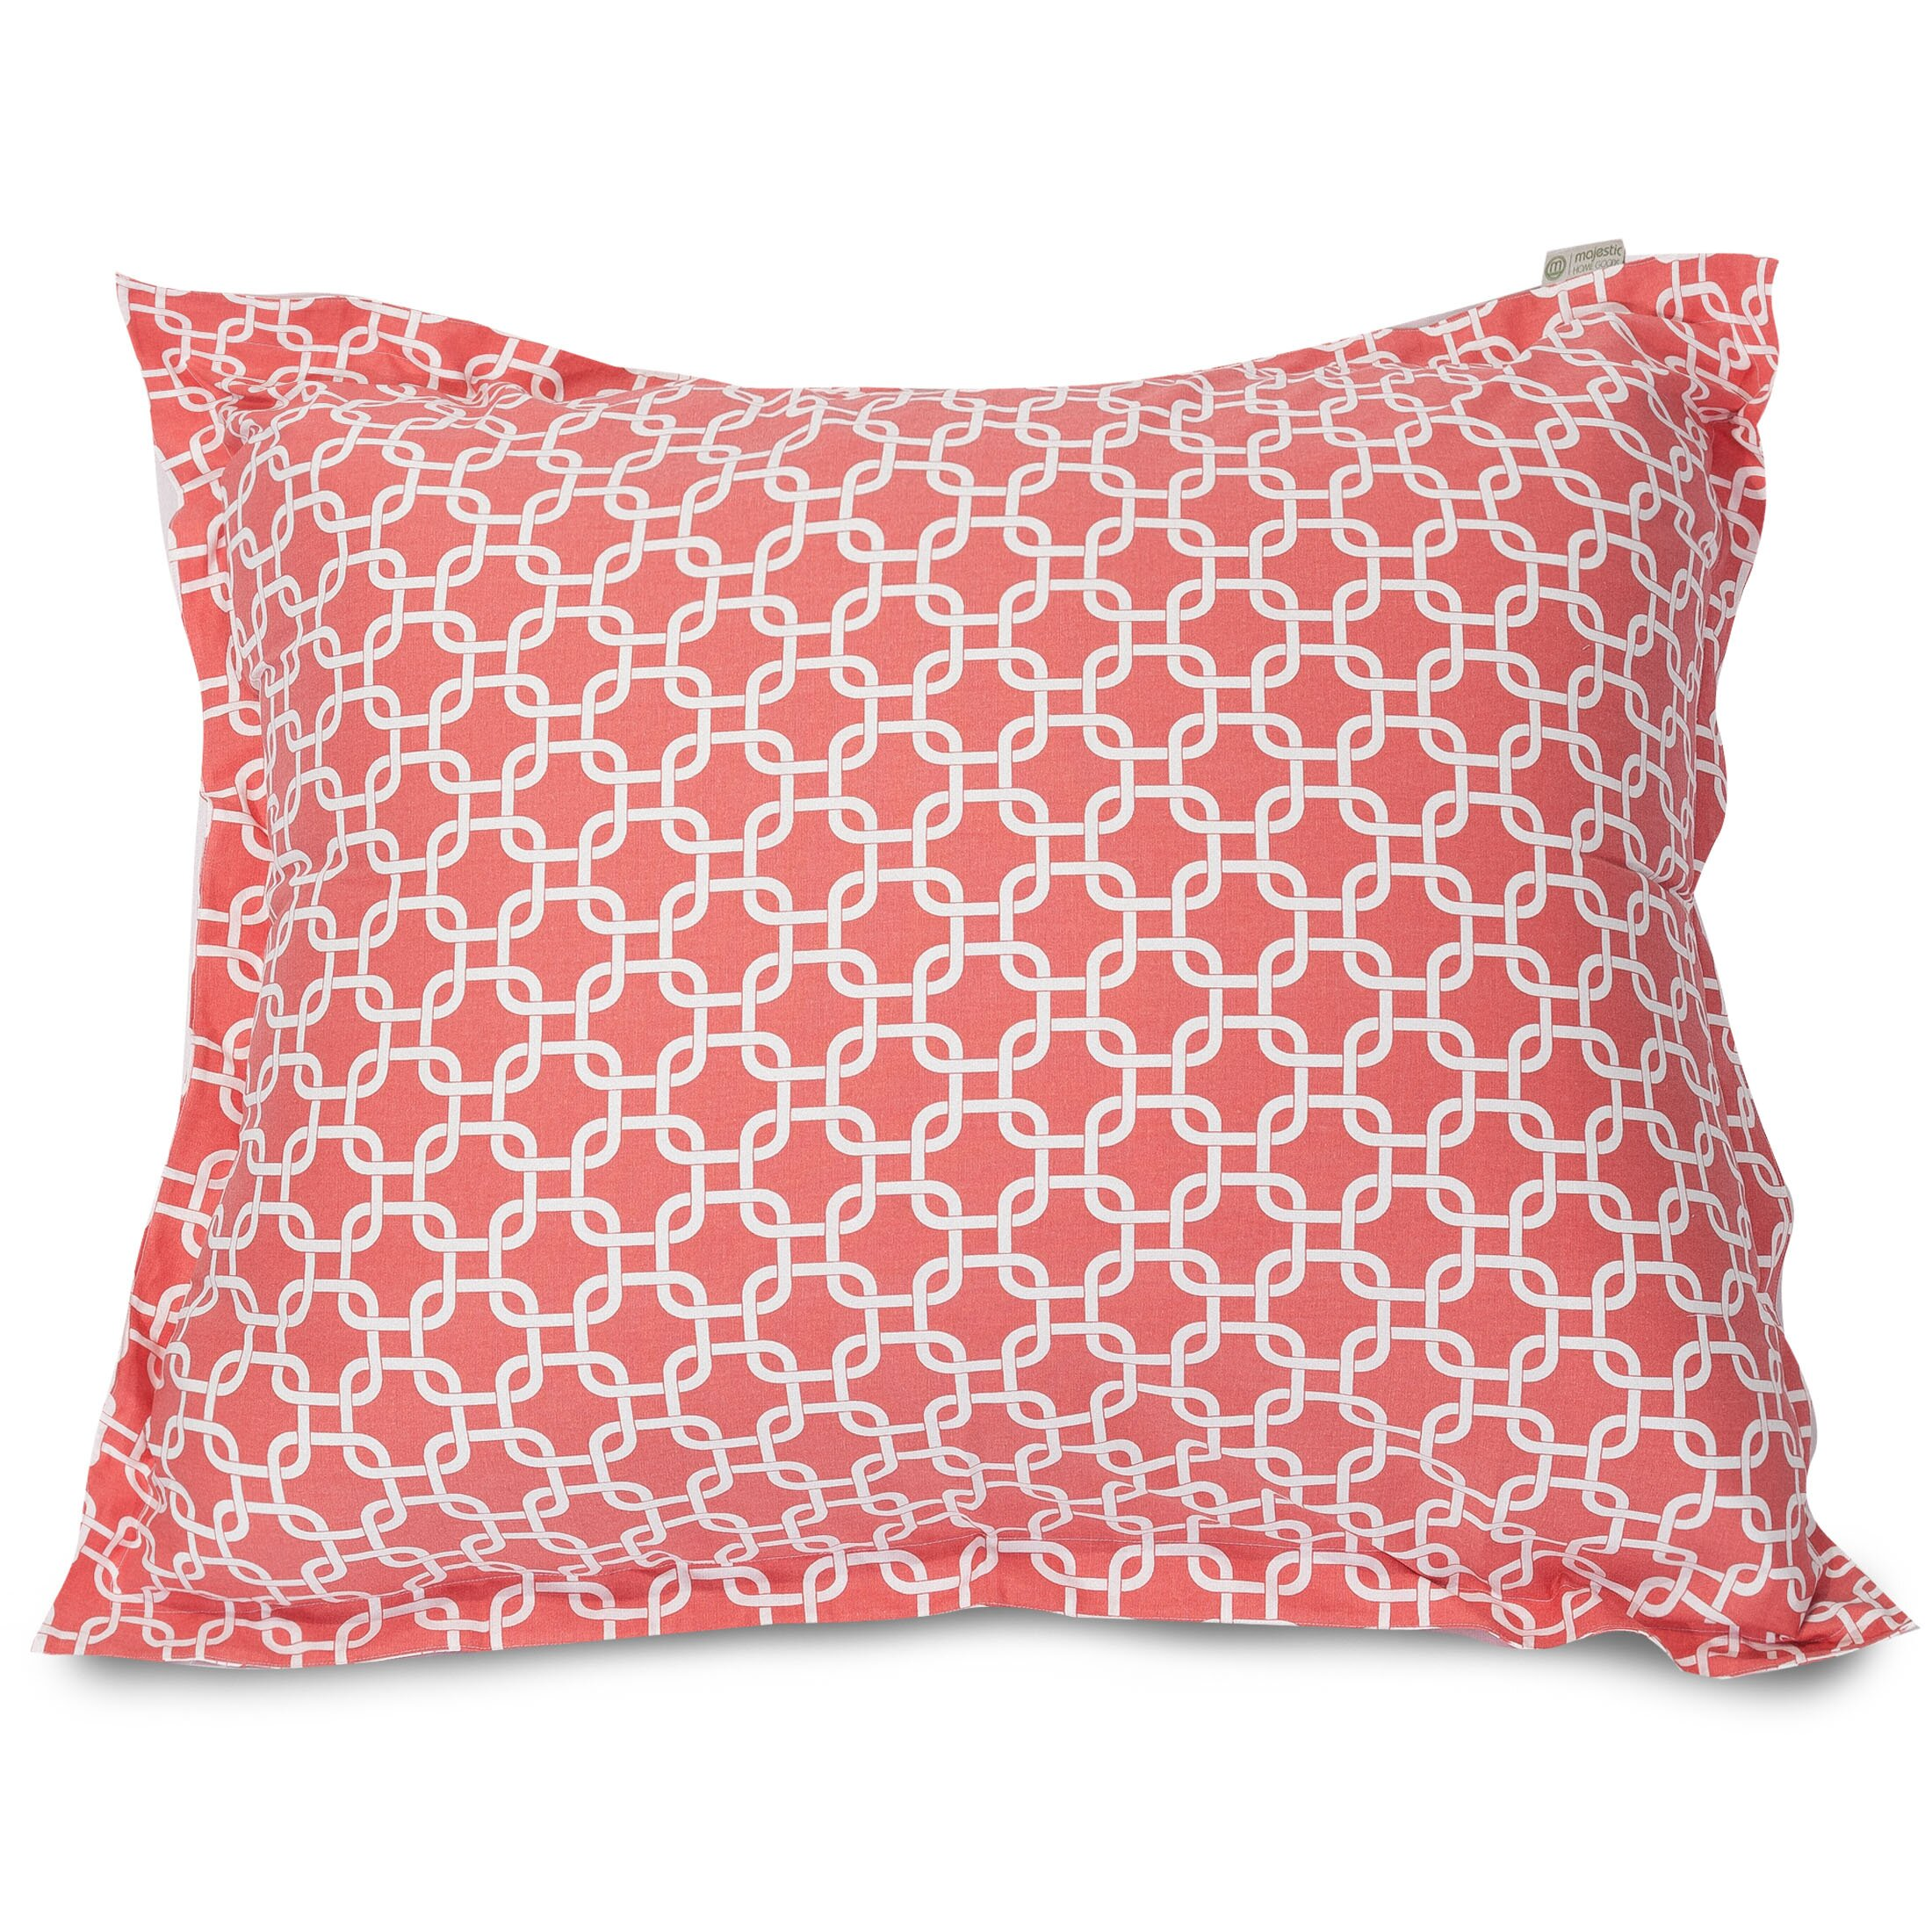 Floor Pillows Home Goods : Majestic Home Goods Coral Links Floor Pillow Wayfair